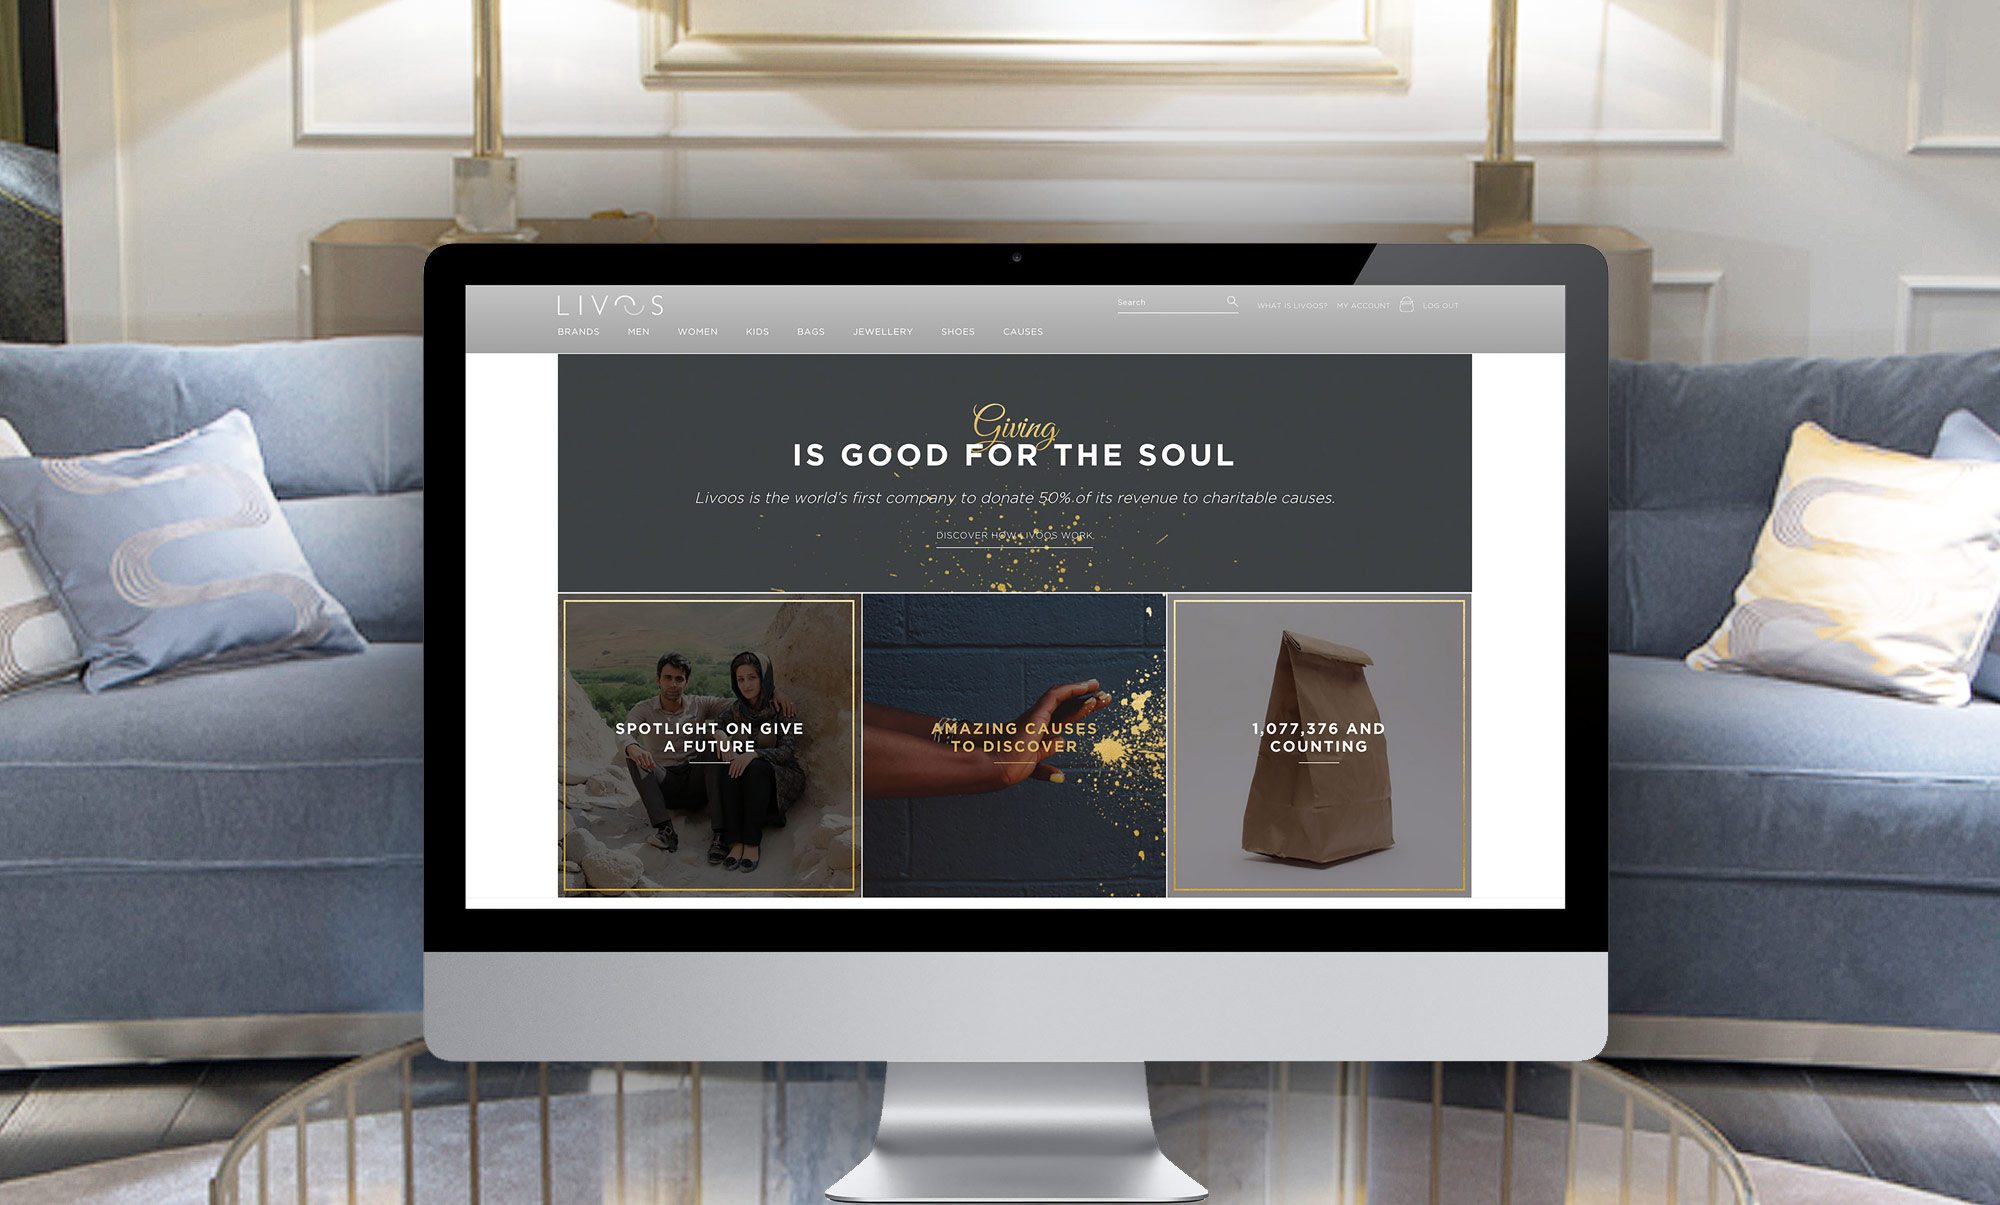 Livoos, The High-End Shopping Site Where Giving Is The Greatest Luxury